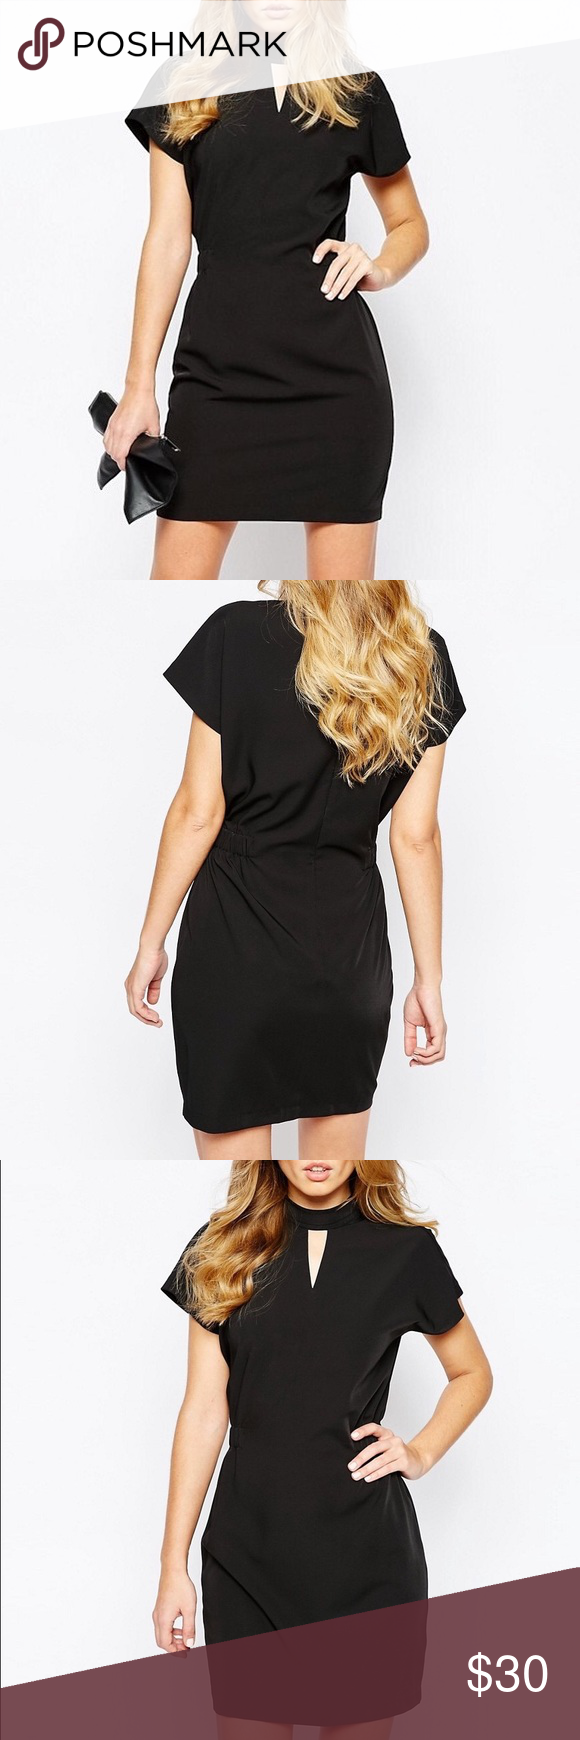 Y.A.S Dress with High Neck Gorgeous black dress with high neckline and front cut-detail. Brand new with tags. UK size 6, equivalent to a US size 2. ASOS Dresses